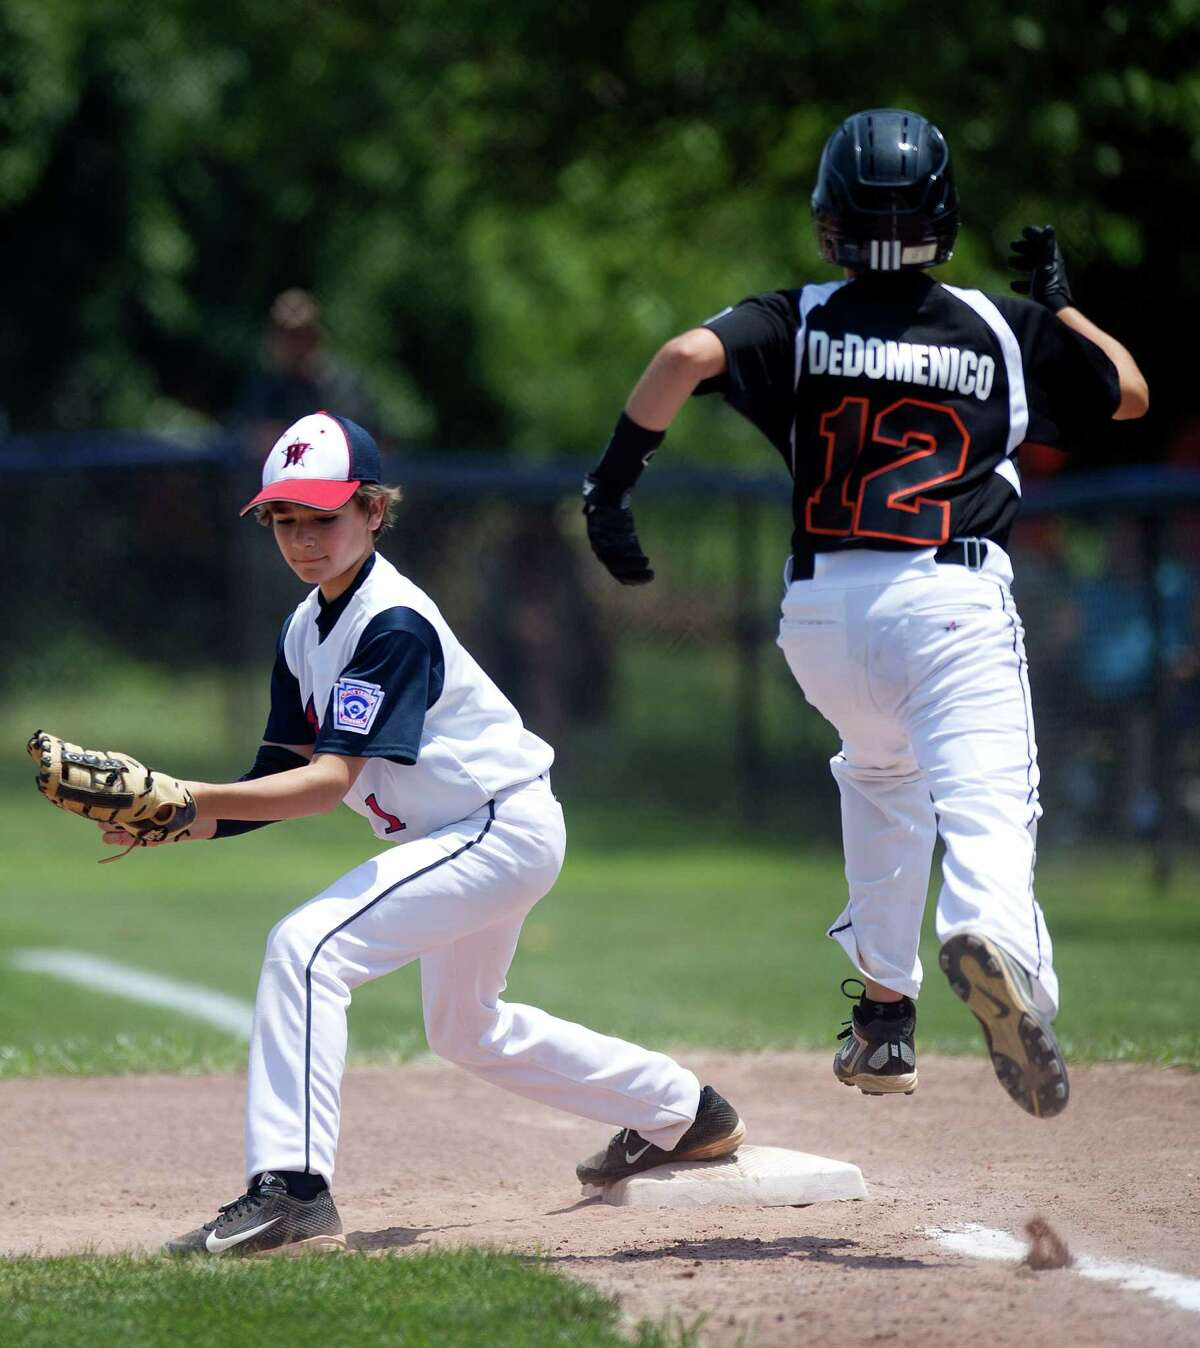 Orange's Drew DeDomenico is out at first as Westport baseman Chris Drbal catches the ball during Saturday's Little League Section 1 tournament game at Frank Noto Field in West Beach Park in Stamford, Conn., on July 20, 2013.